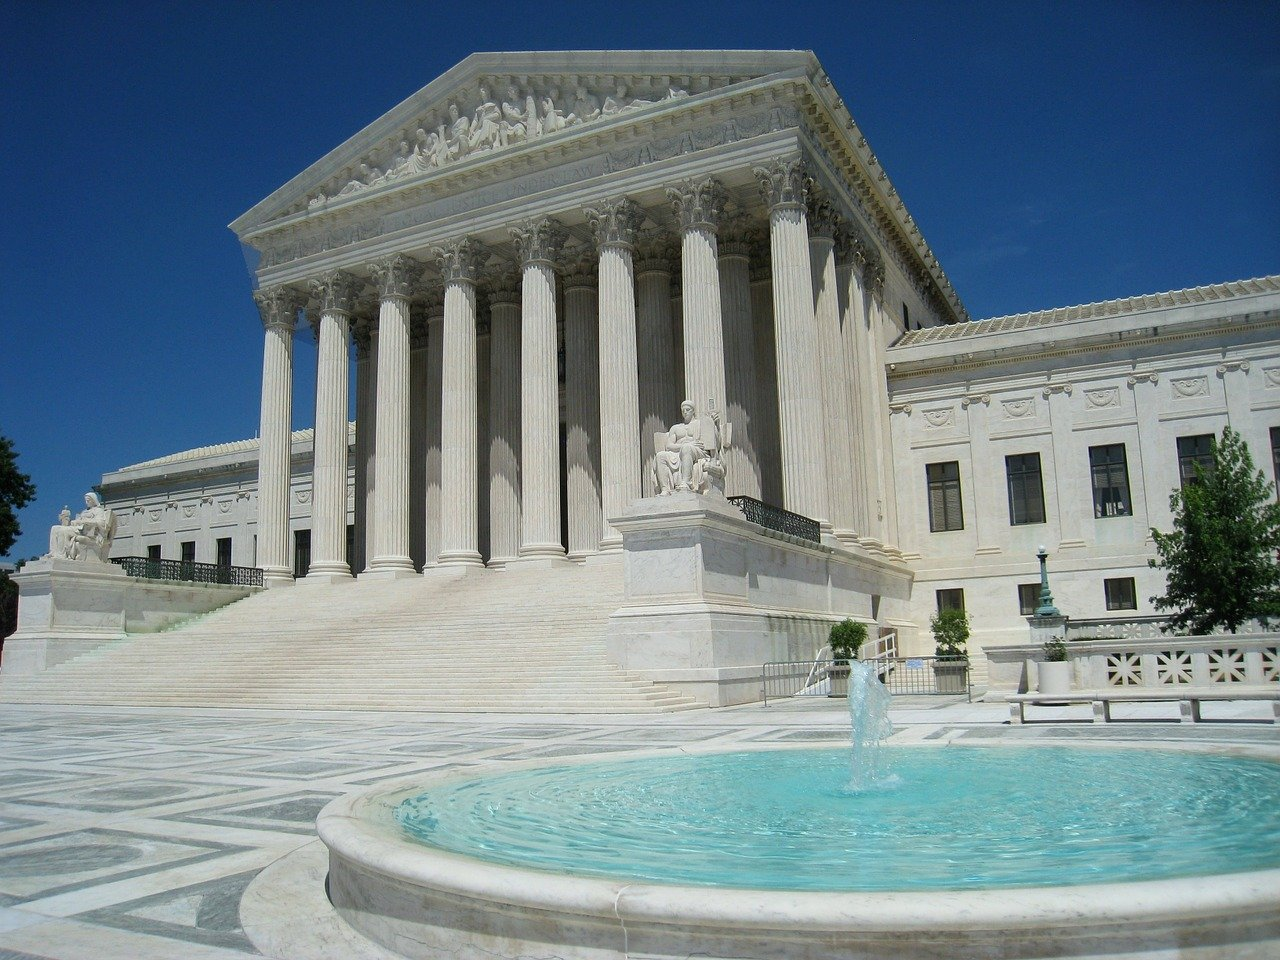 US Supreme Court ruling limits when police officers can enter home without warrant